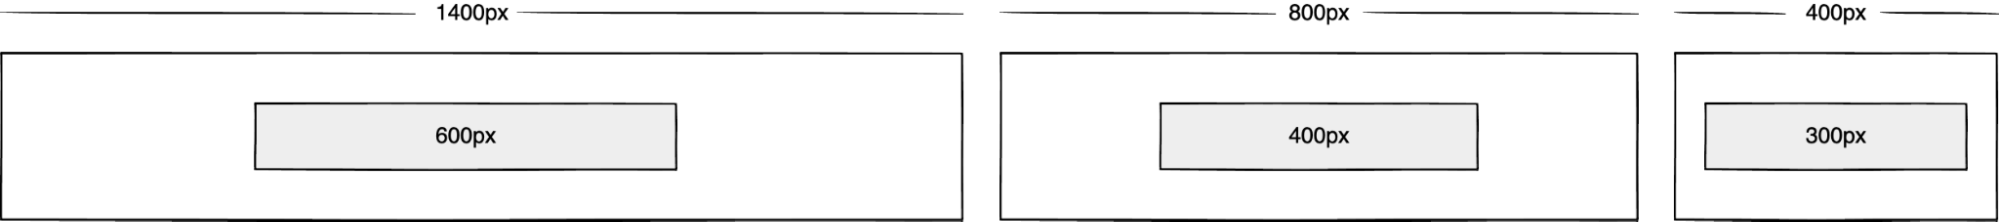 Wireframe showing an 800px box inside of a 1400px box, a 400px box inside of an 800px box, and a 300px box inside of a 400px box